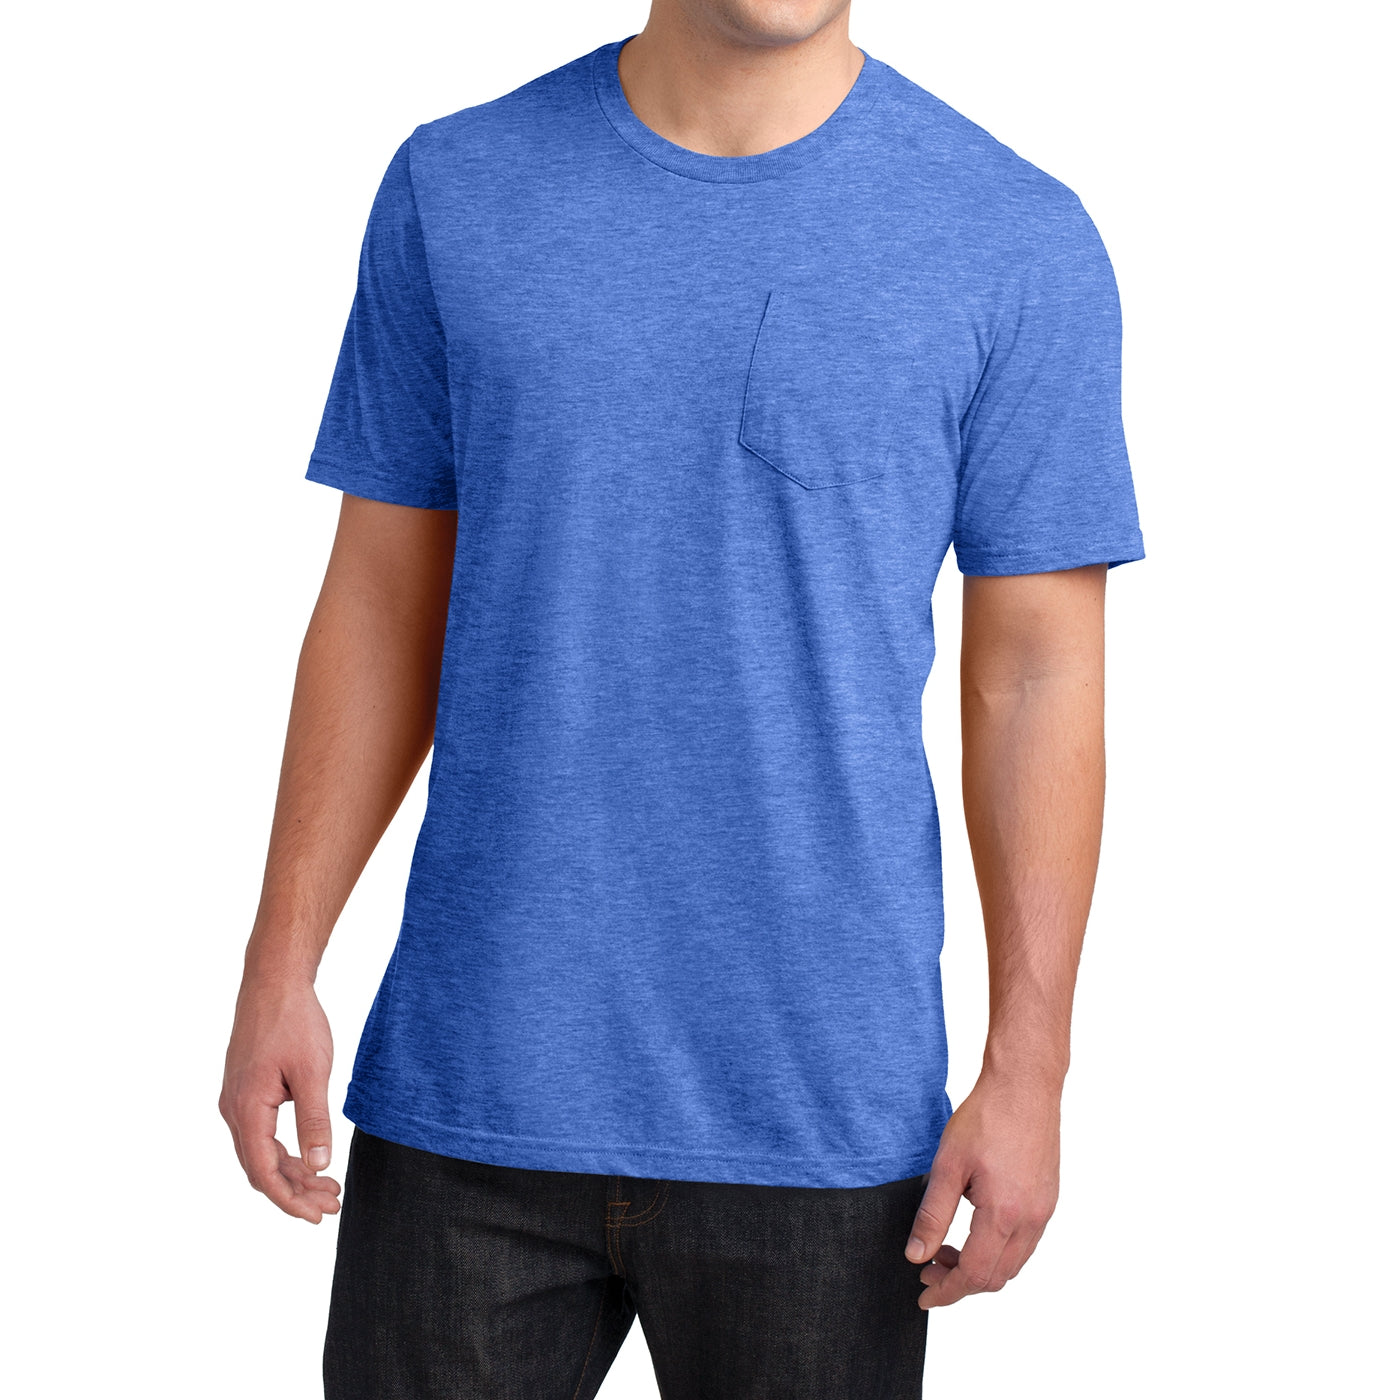 Men's Young Very Important Tee with Pocket - Heathered Royal